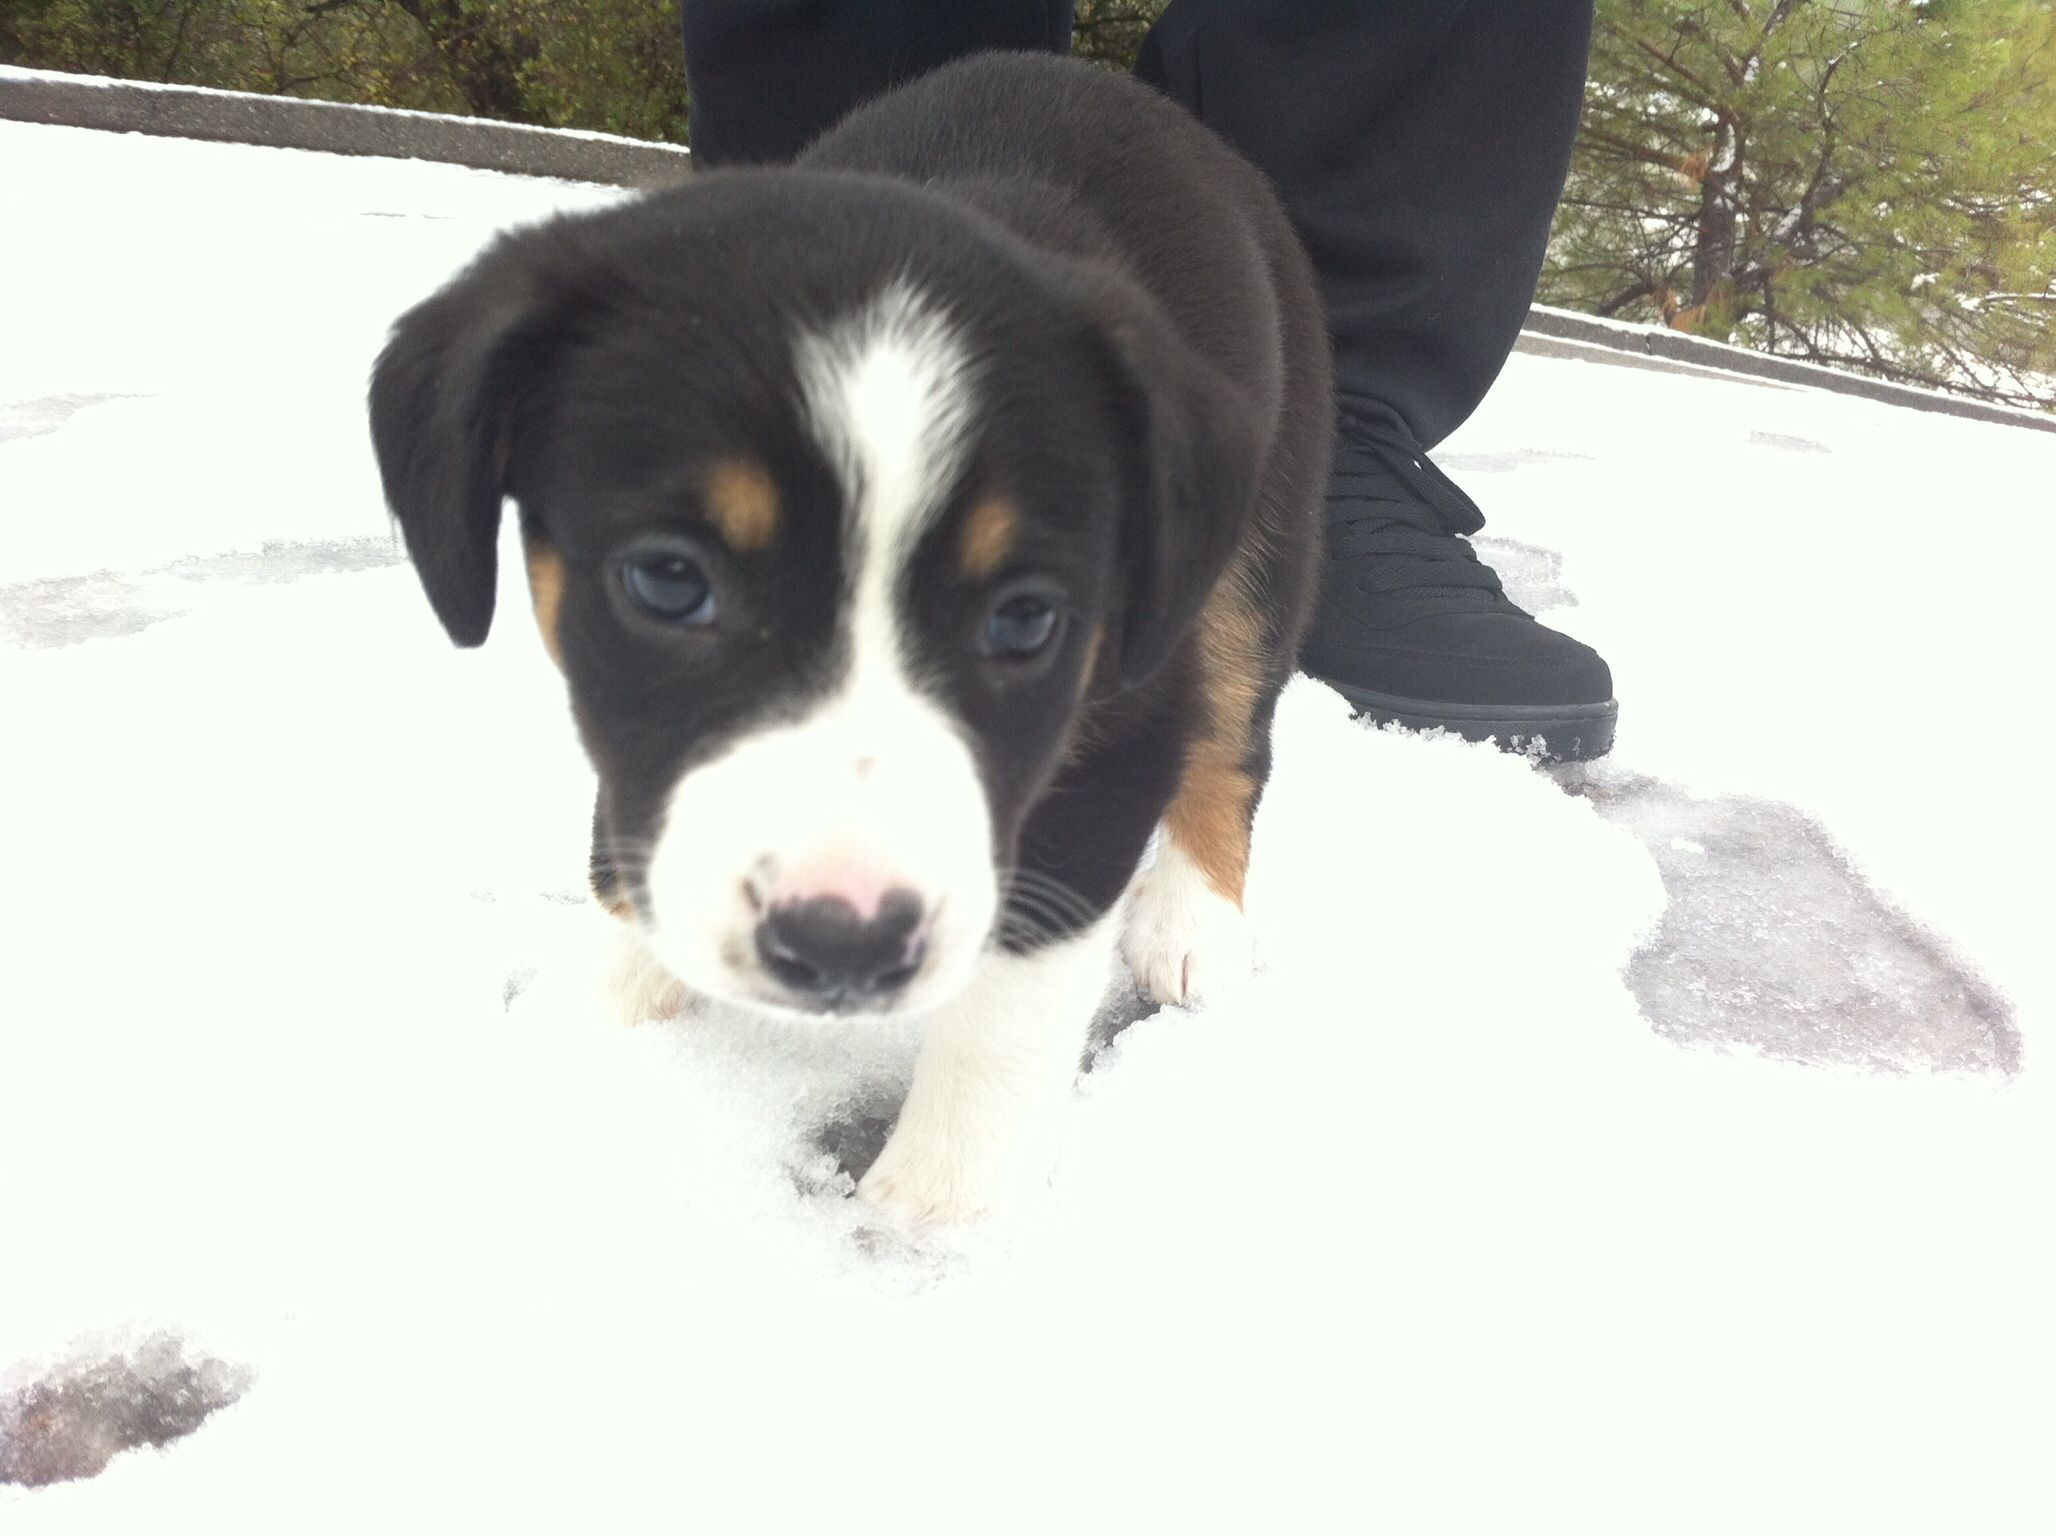 River Border Collie Australian Shepherd Mix 2 Months Old Australian Shepherd Australian Shepherd Mix Animals